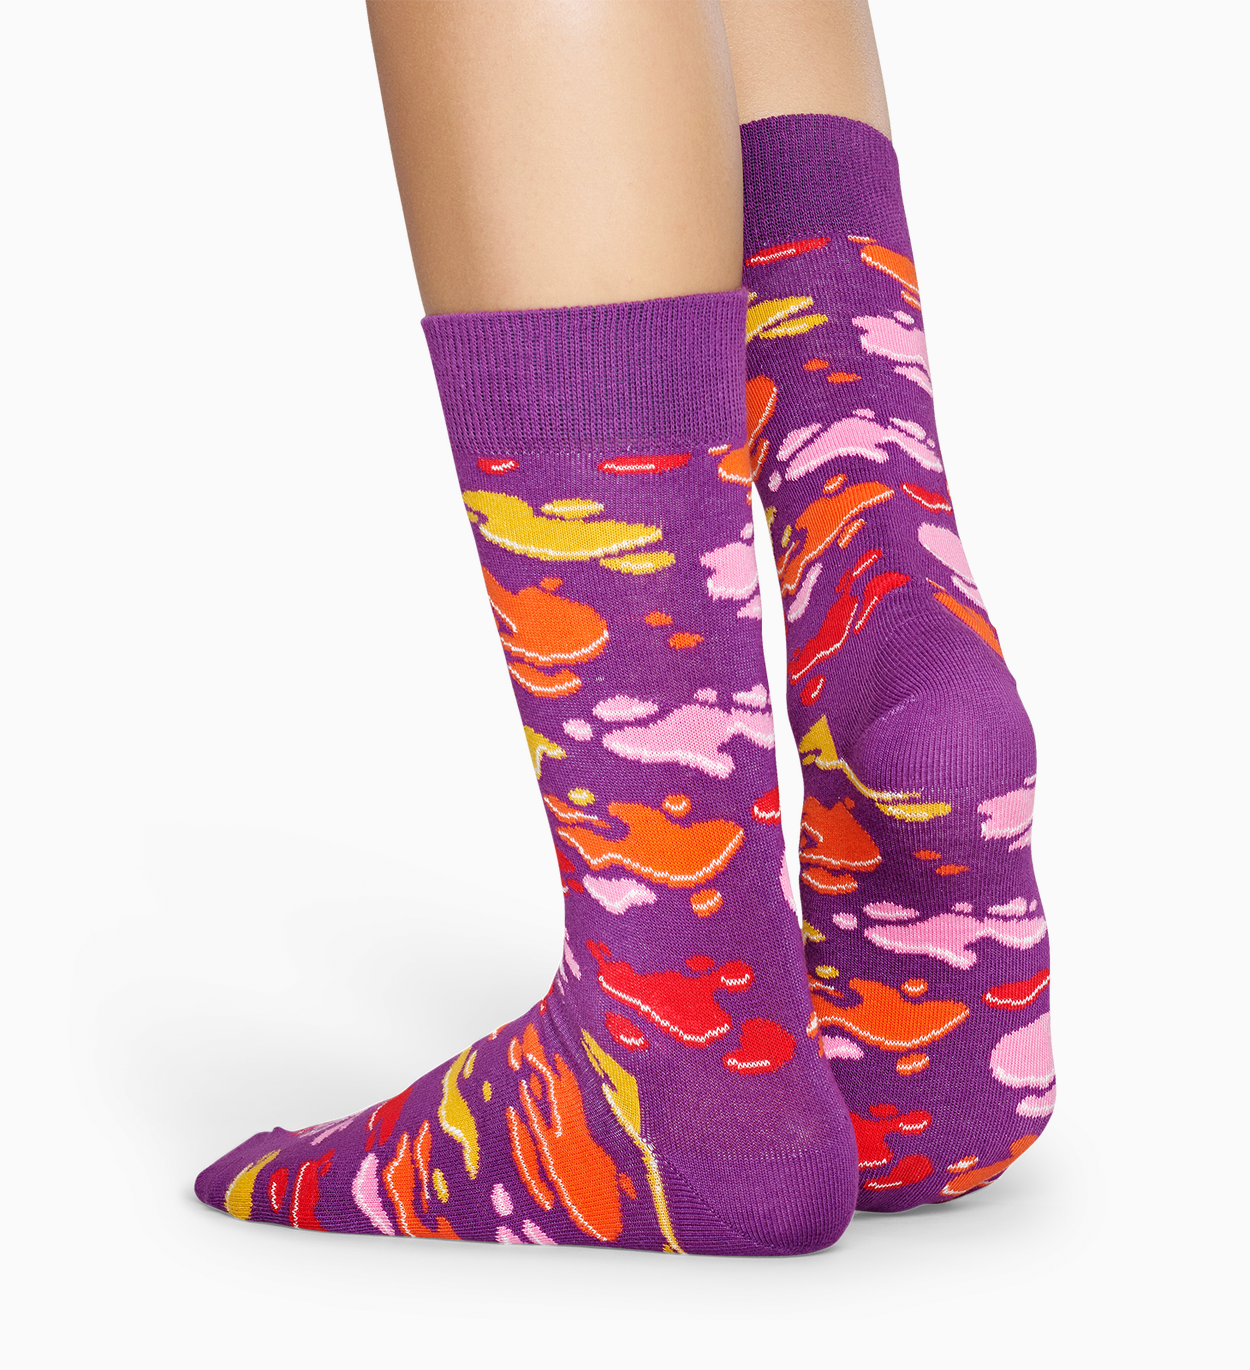 Patterned Purple Socks: Puddle | Happy Socks